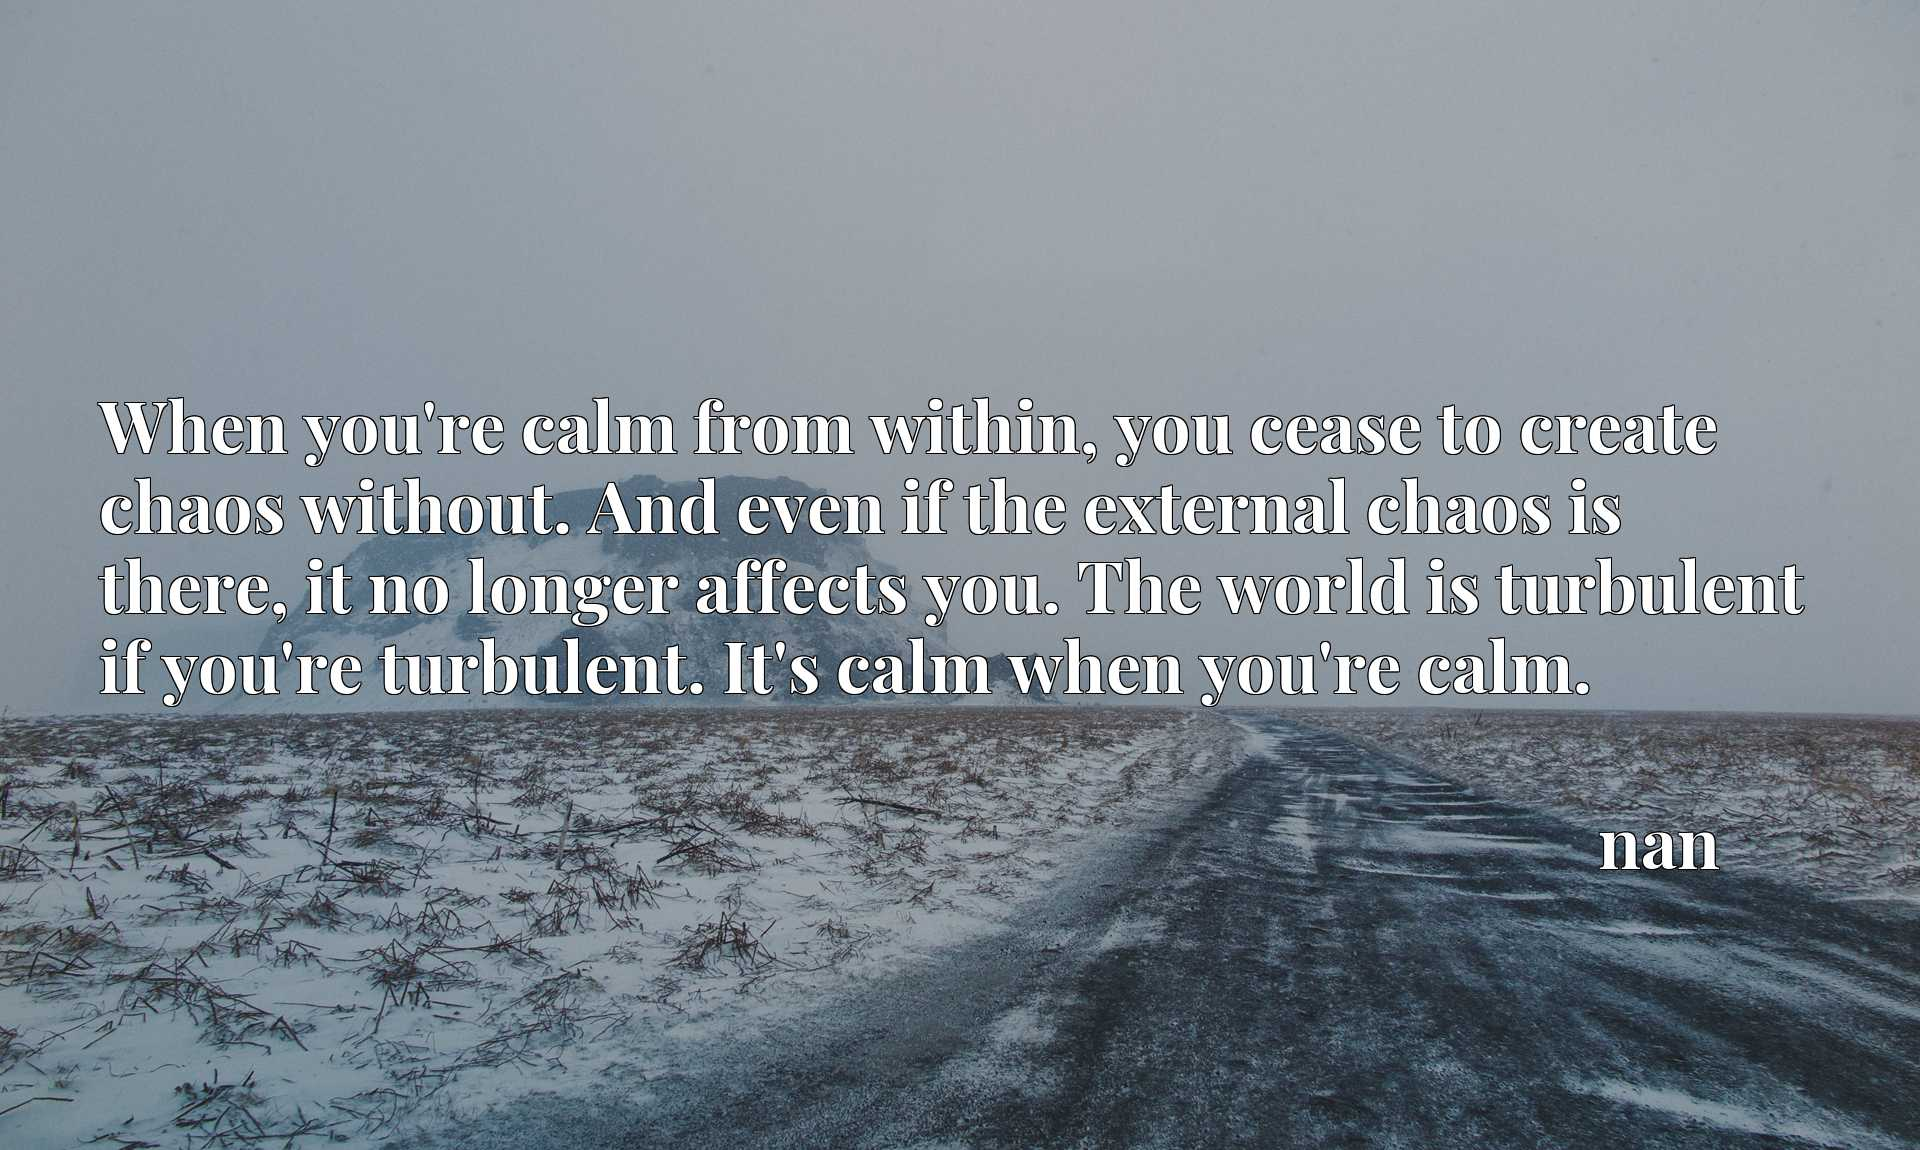 When you're calm from within, you cease to create chaos without. And even if the external chaos is there, it no longer affects you. The world is turbulent if you're turbulent. It's calm when you're calm.